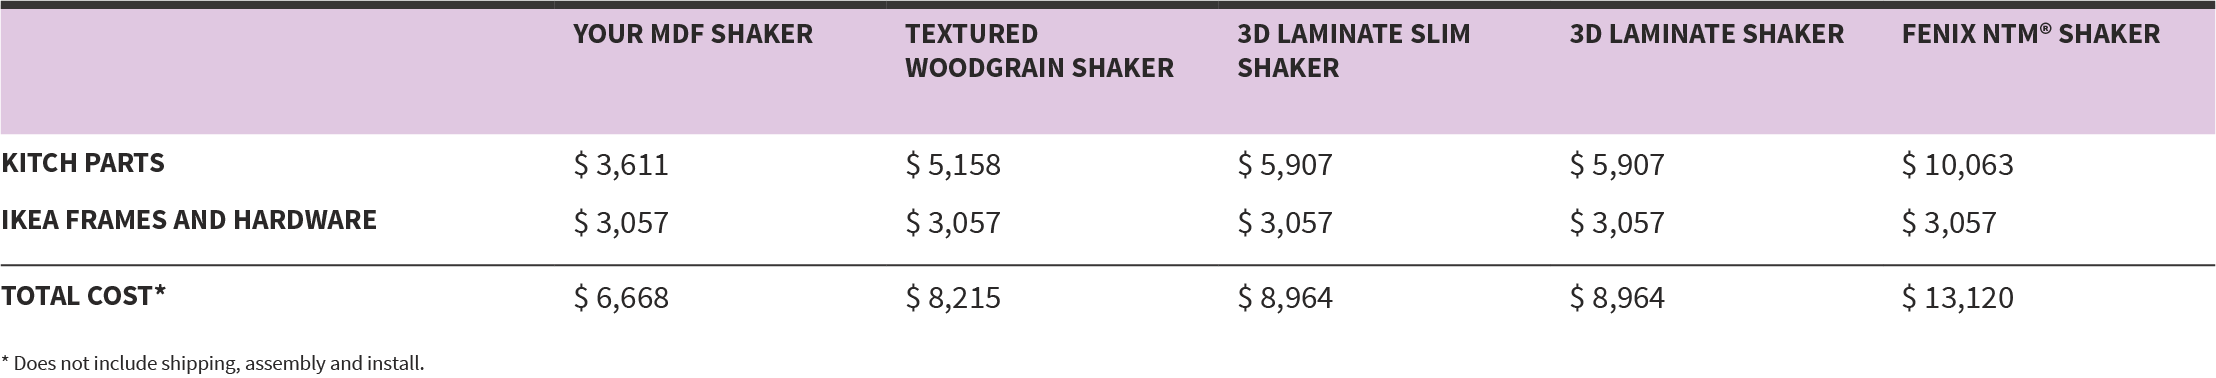 Shaker Pricing Chart.png